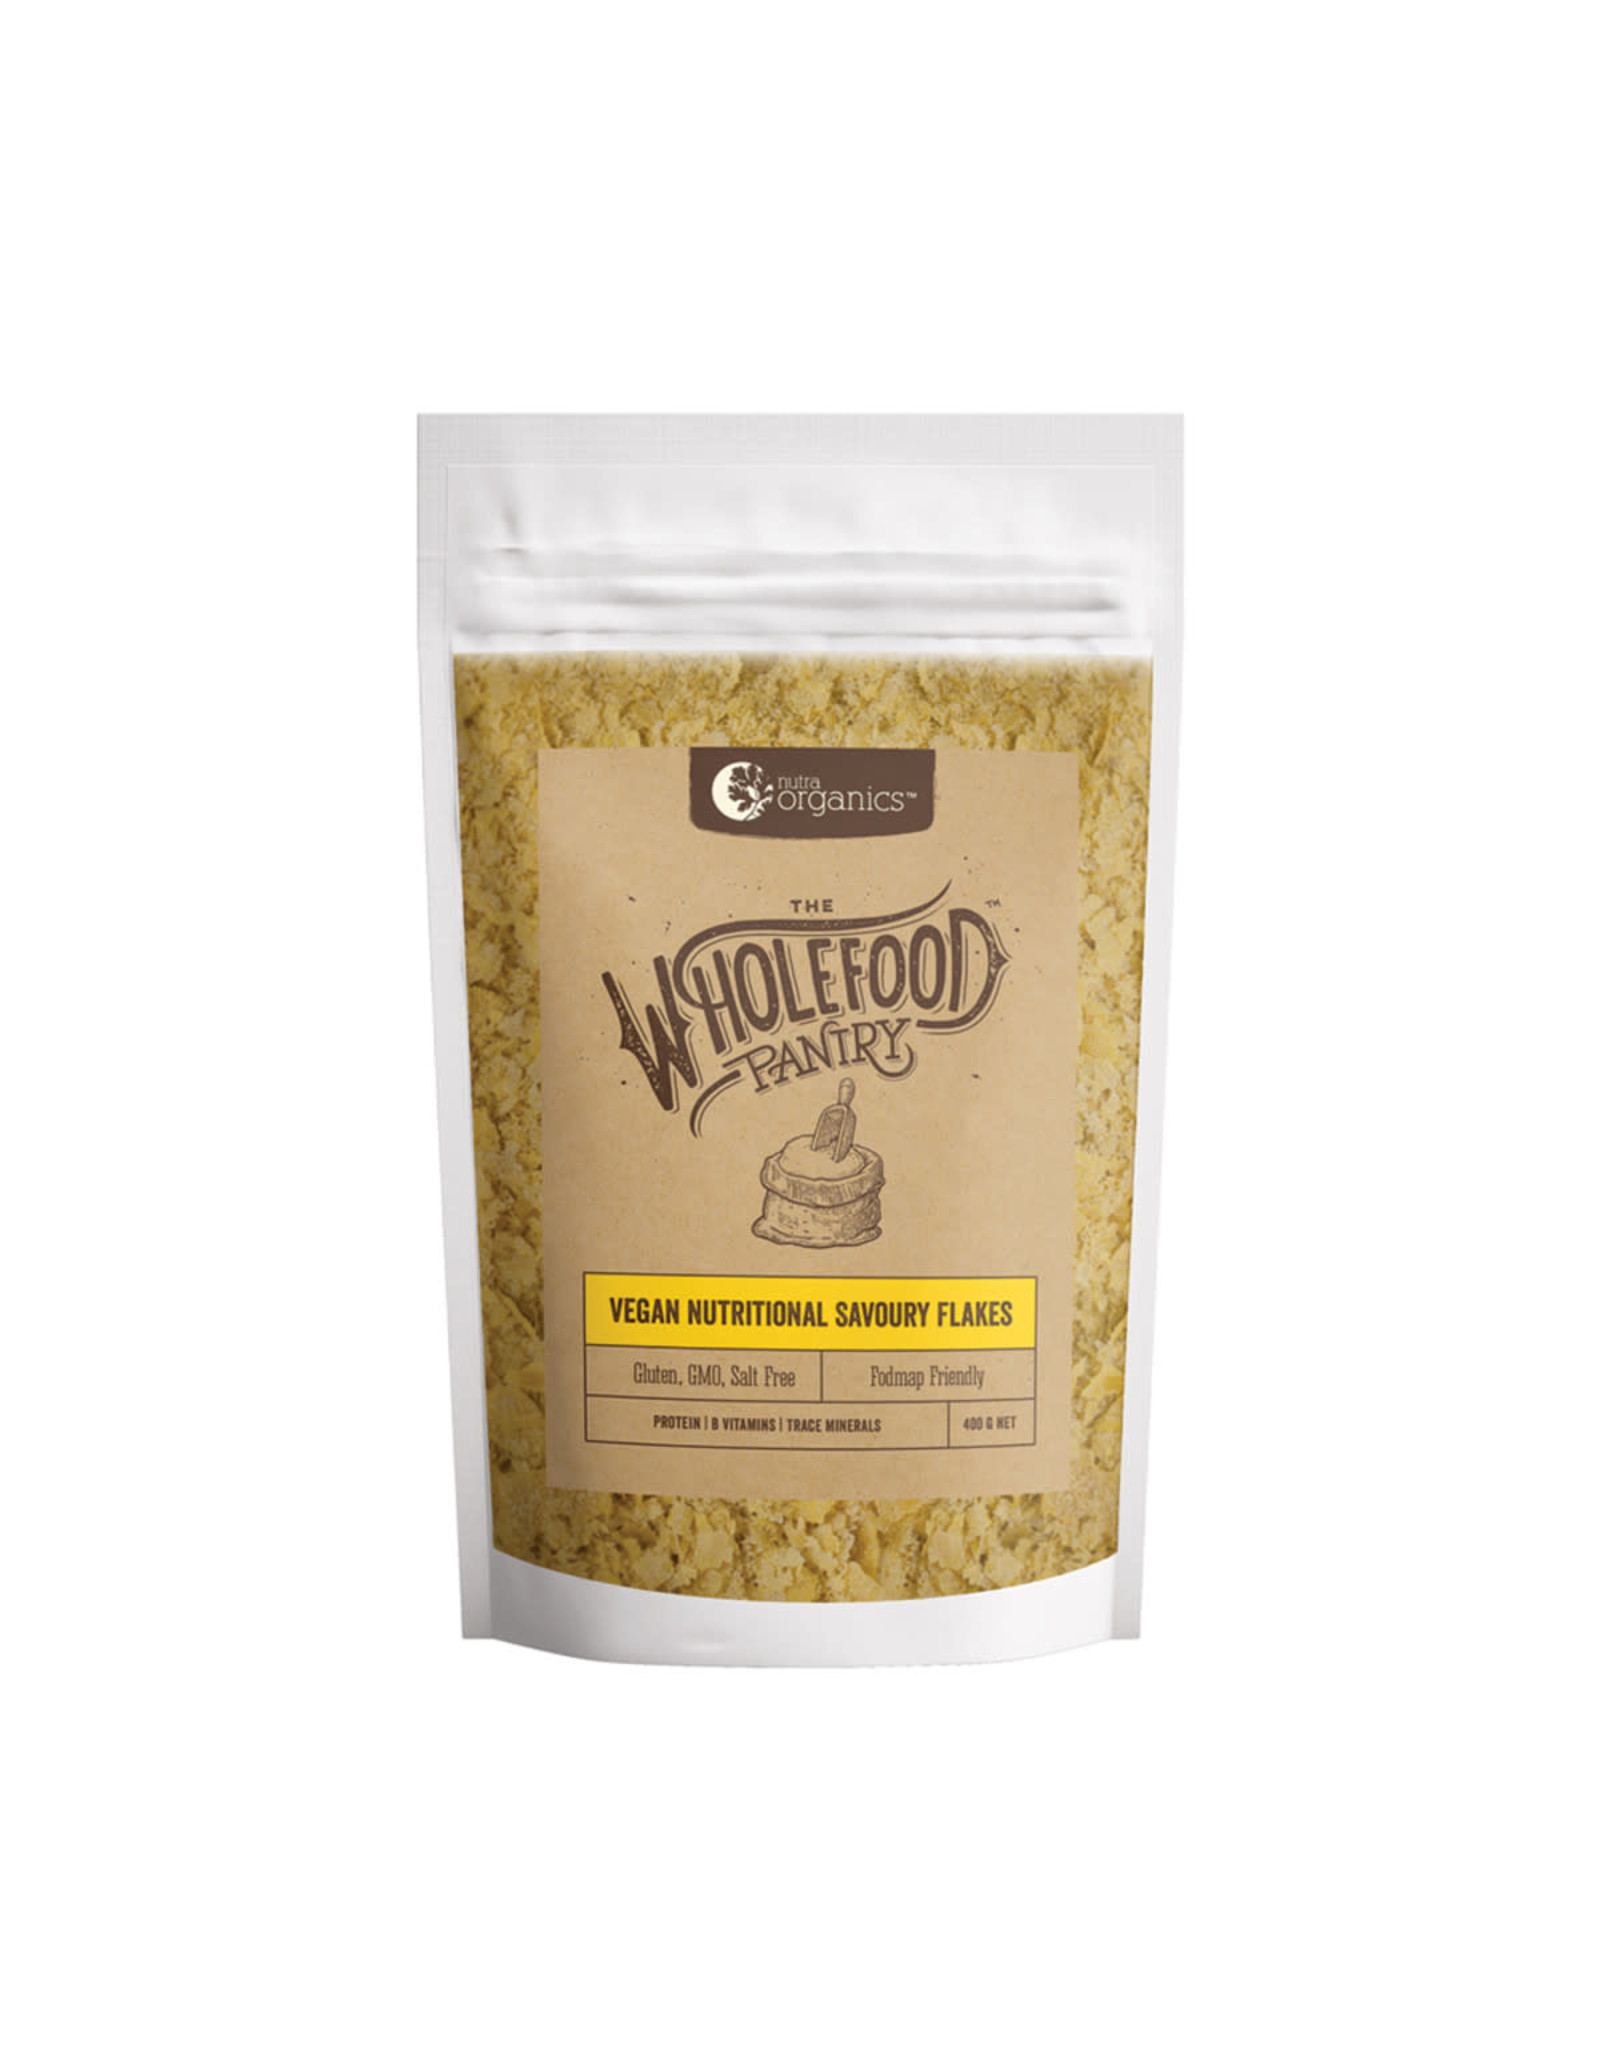 The Whole Food Pantry Vegan Nutritional Savoury Flakes 400g